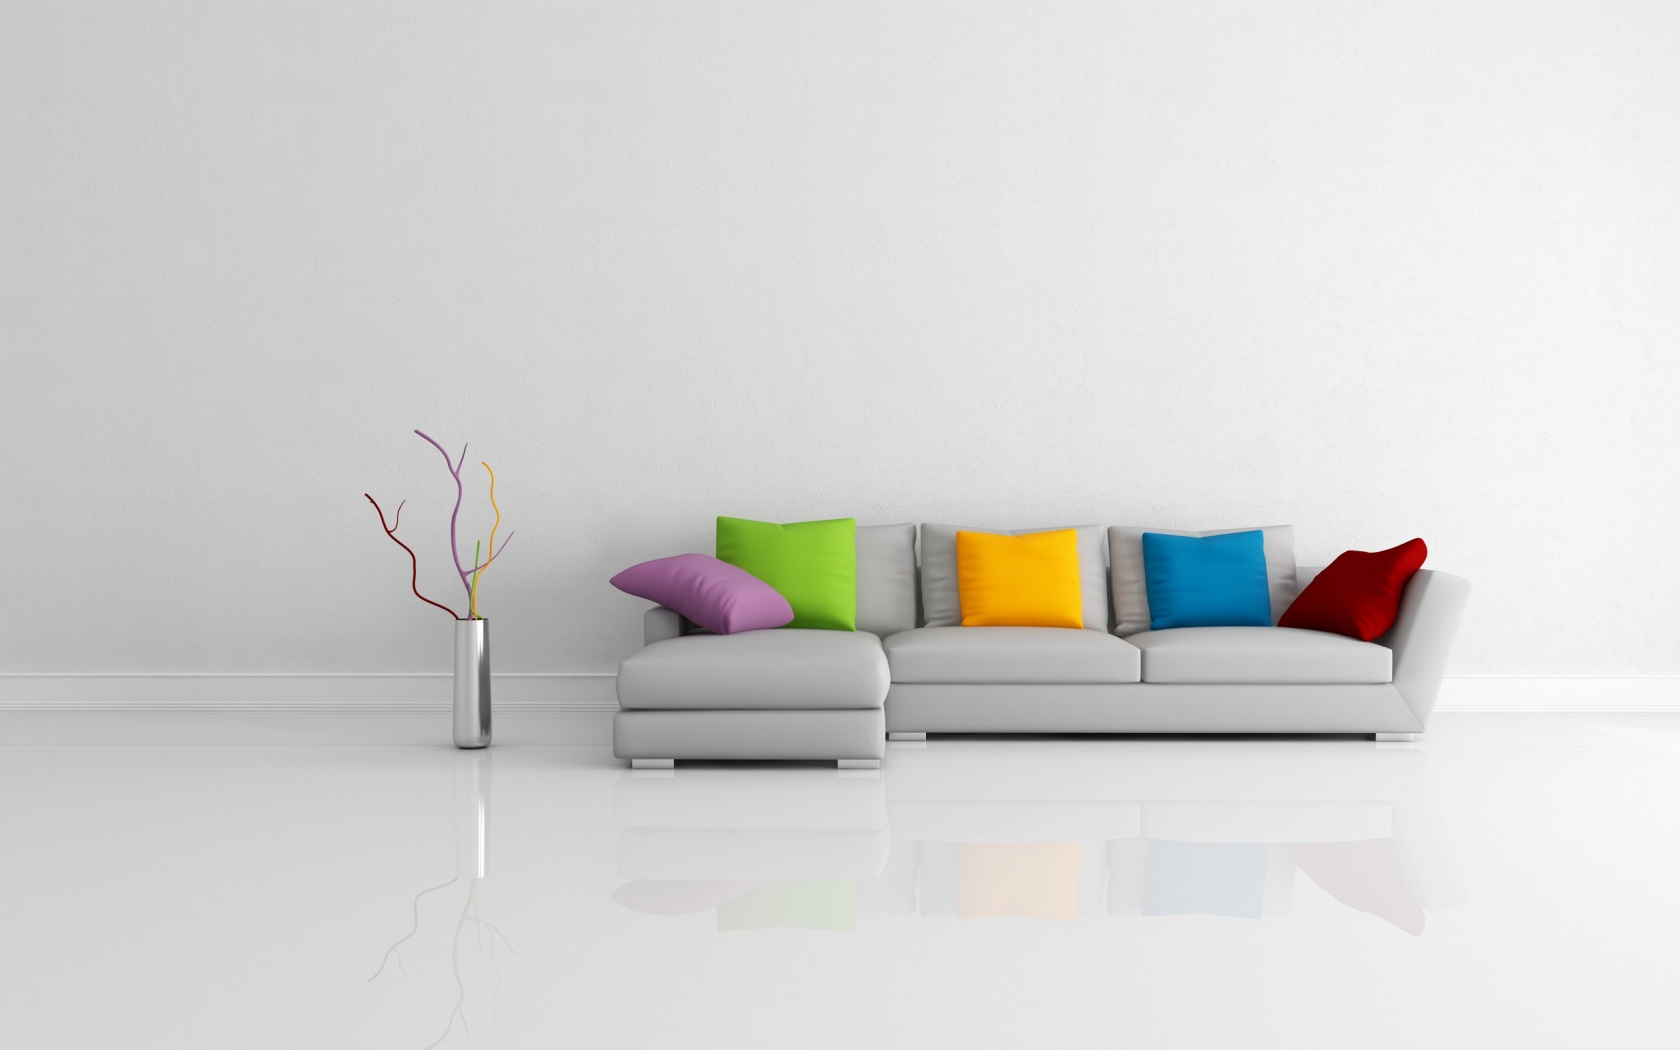 modern sofa set images vegan leather uk colorful pillows wallpapers 1680x1050 269209